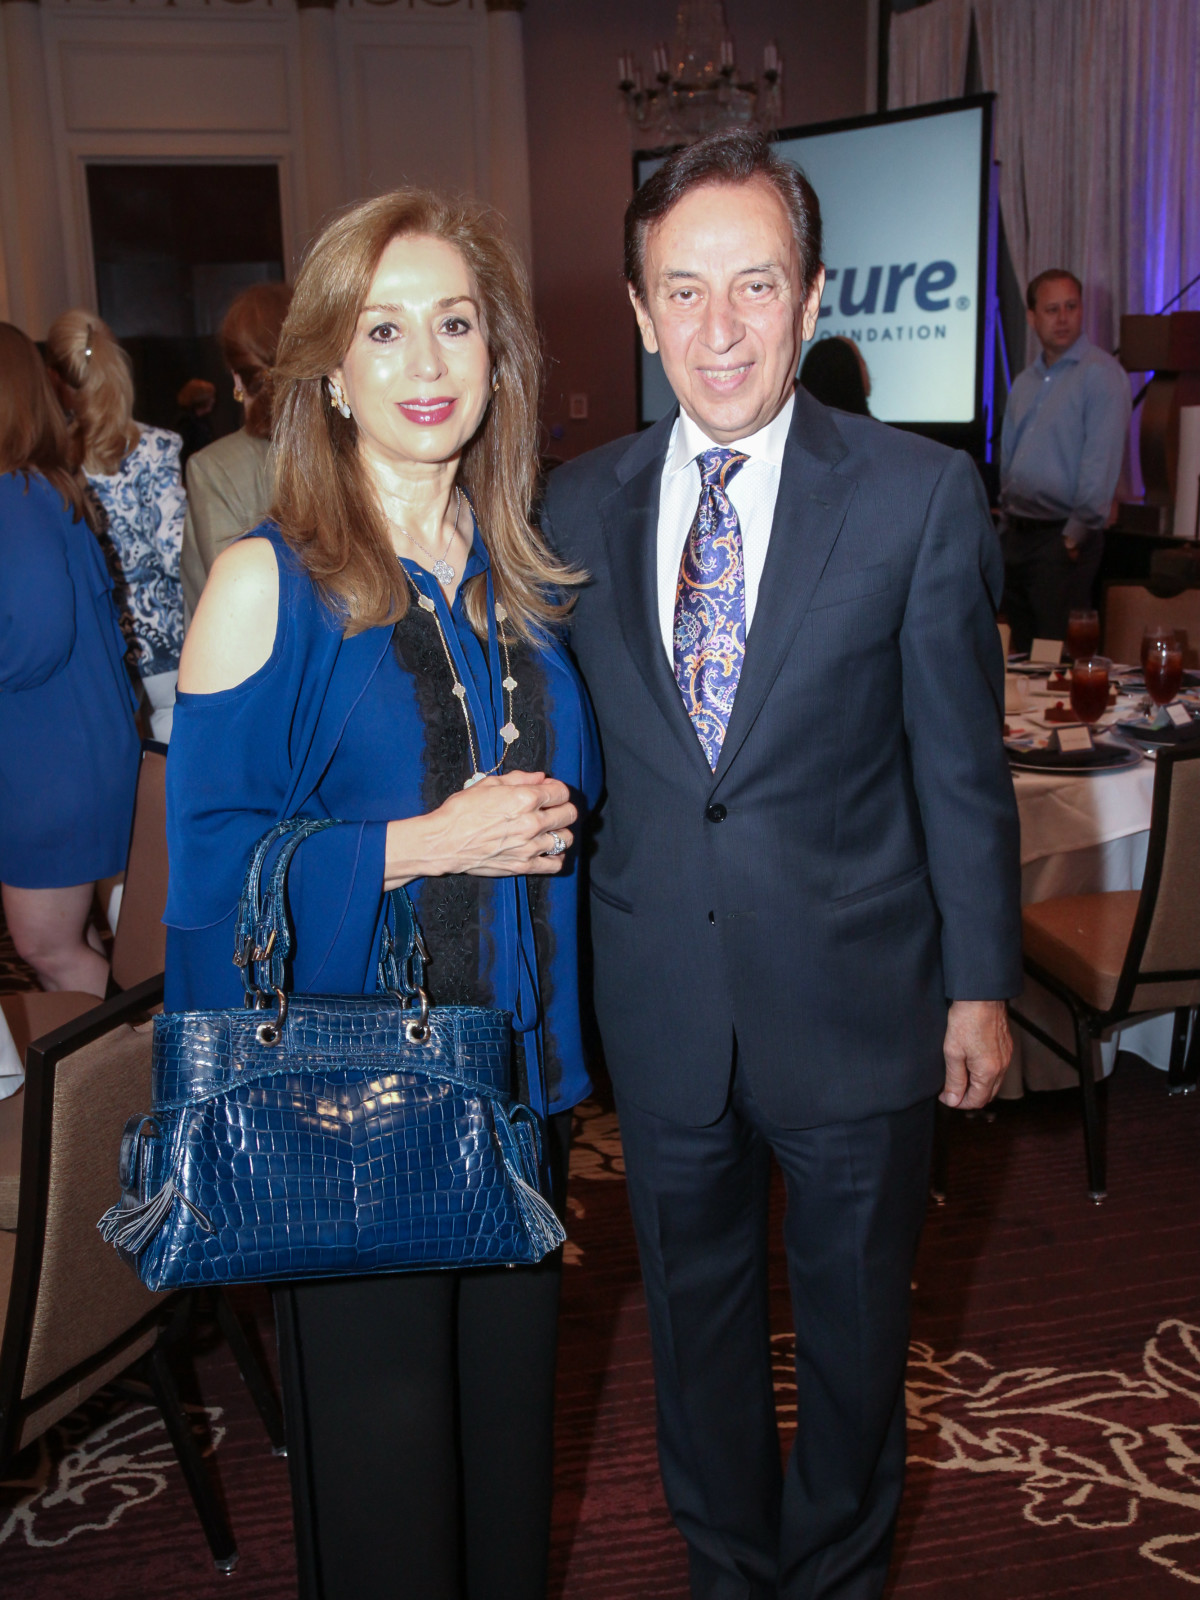 Blue Cure Roya and Massoud Taghdisi